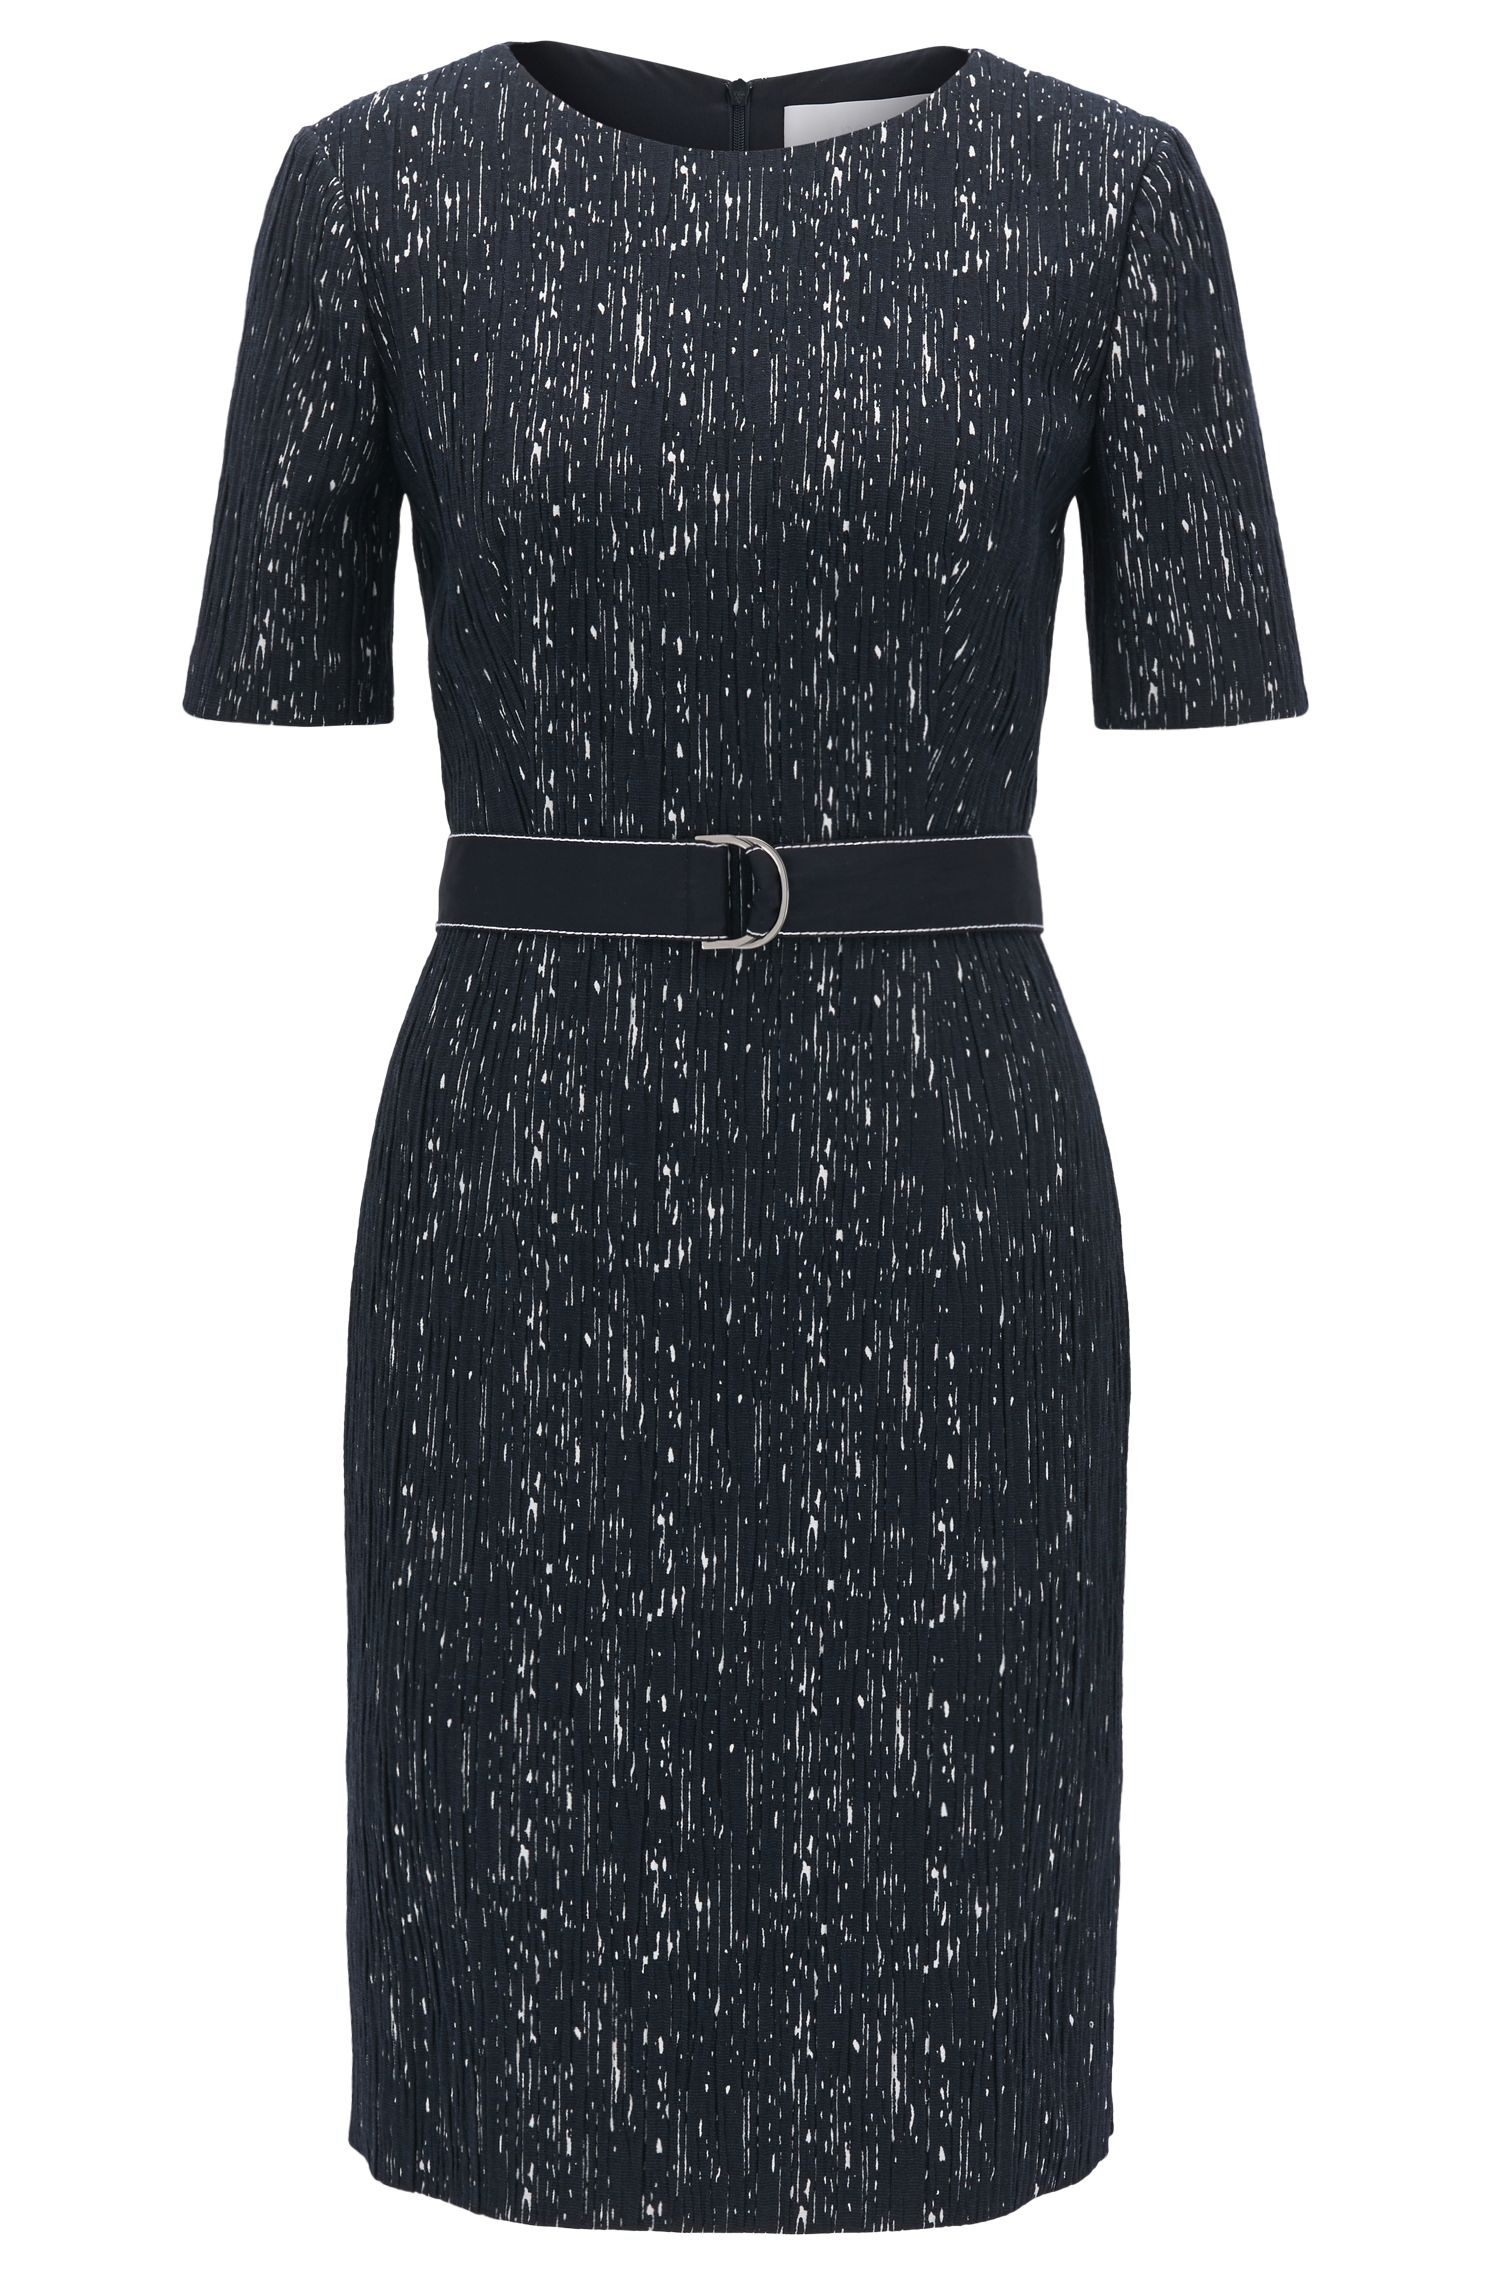 Belted shift dress in a patterned structured stretch fabric